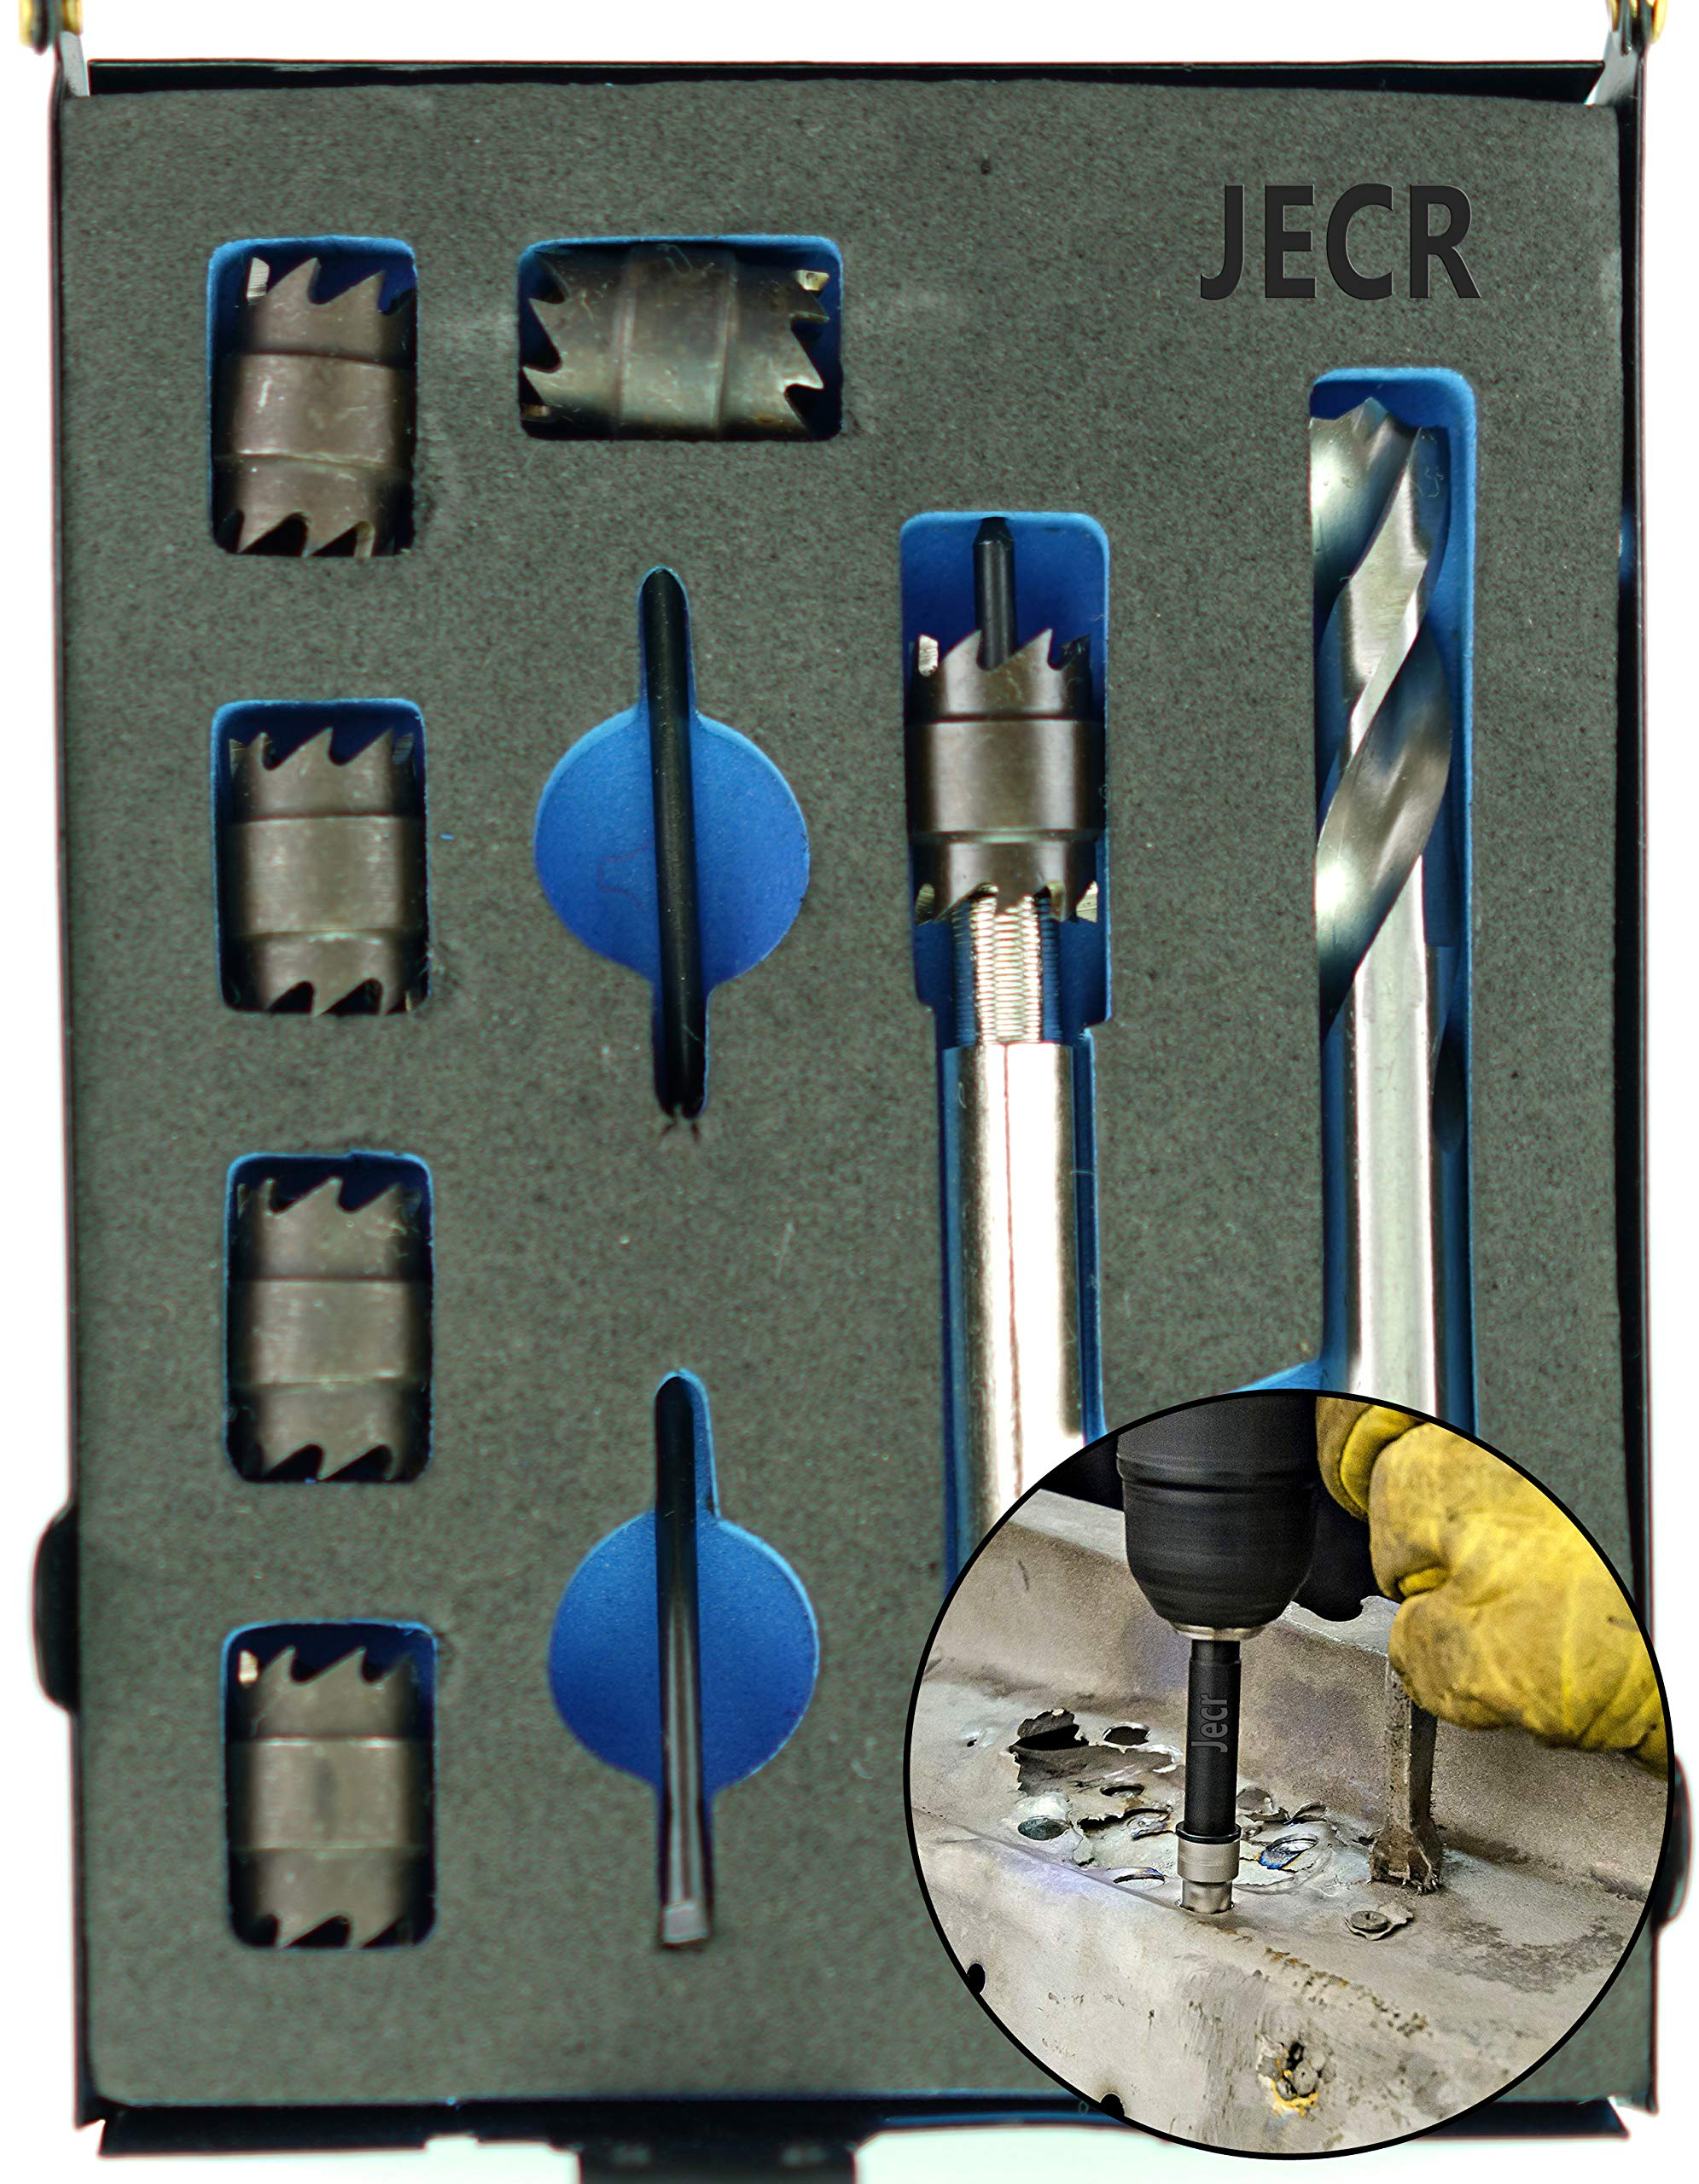 Spot Weld Cutter Kit, 9 Piece Sheet Metal Hole Cutter Punch Remover Panel Separator for Power Drill Welding Auto Body Work Tool, 3/8 Inch Drill Bit Tools